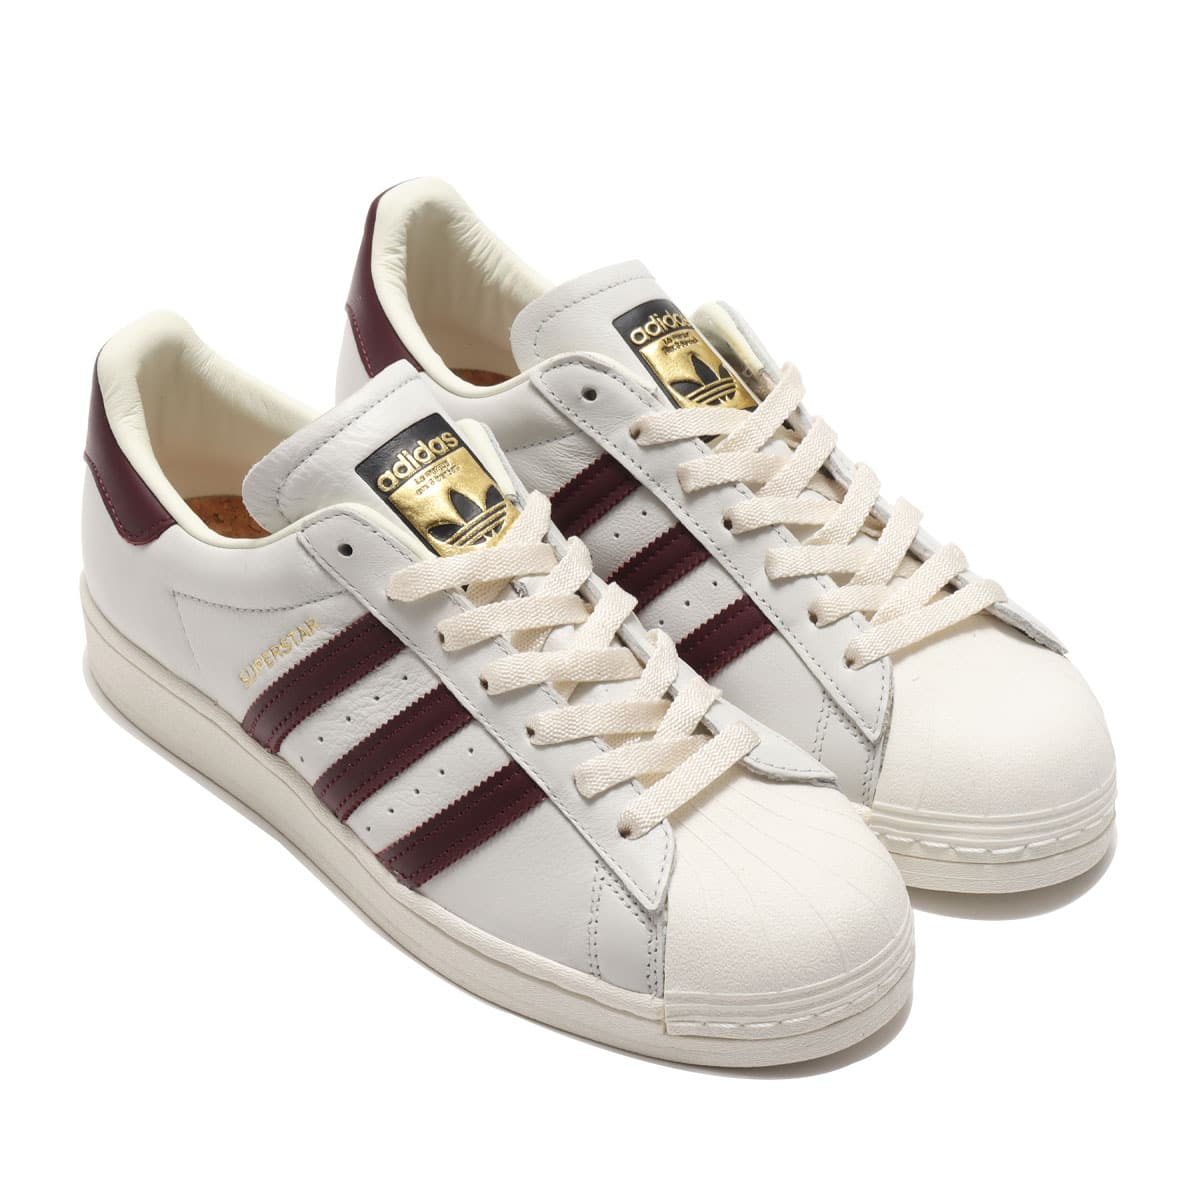 adidas SUPERSTAR OFF WHITE/MAROON/OFF WHITE 21SS-I_photo_large